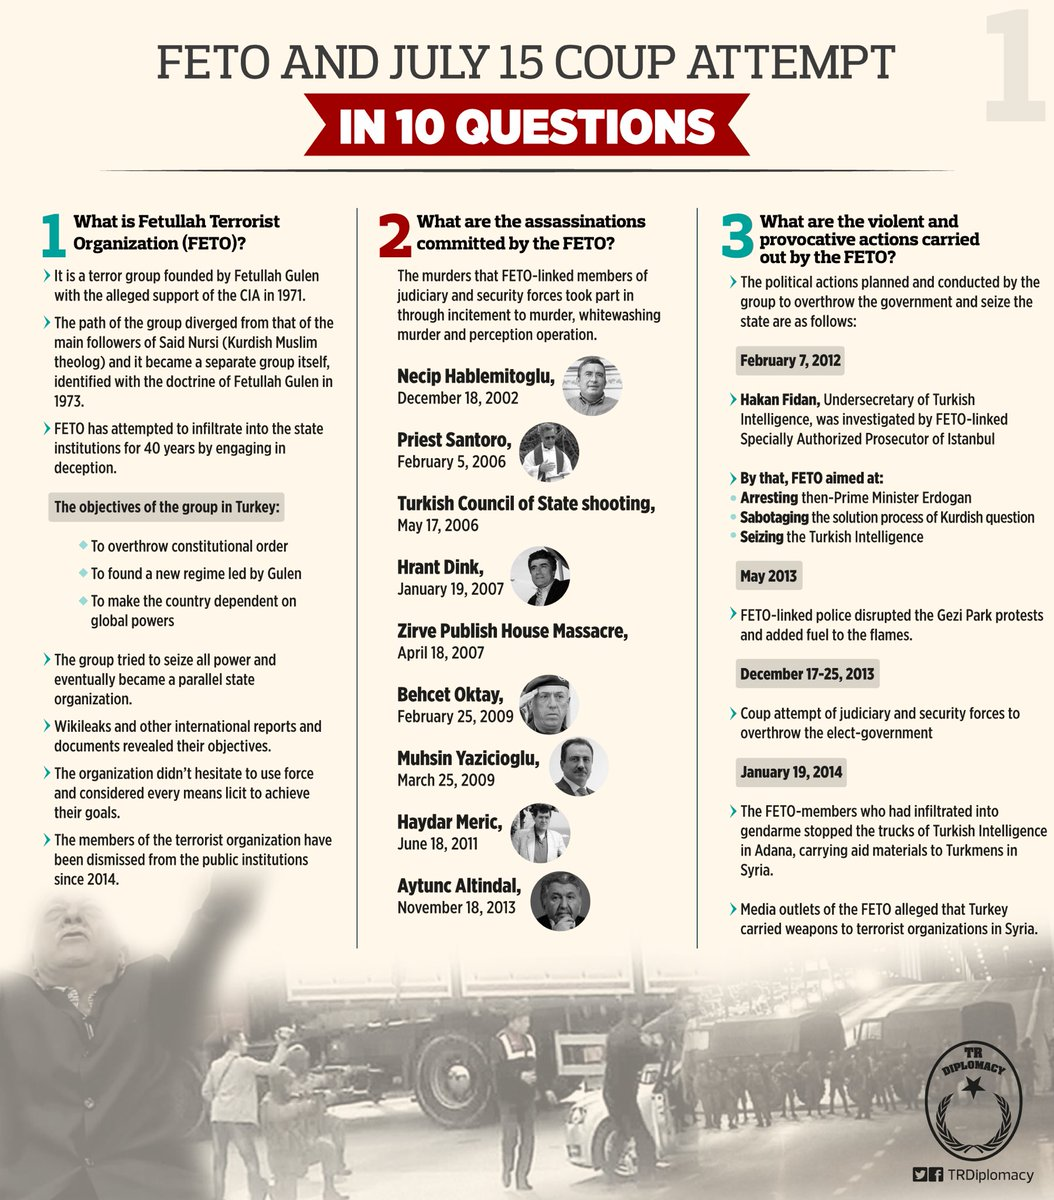 The terror group FETO and July 15 Coup Attempt on 10 questions